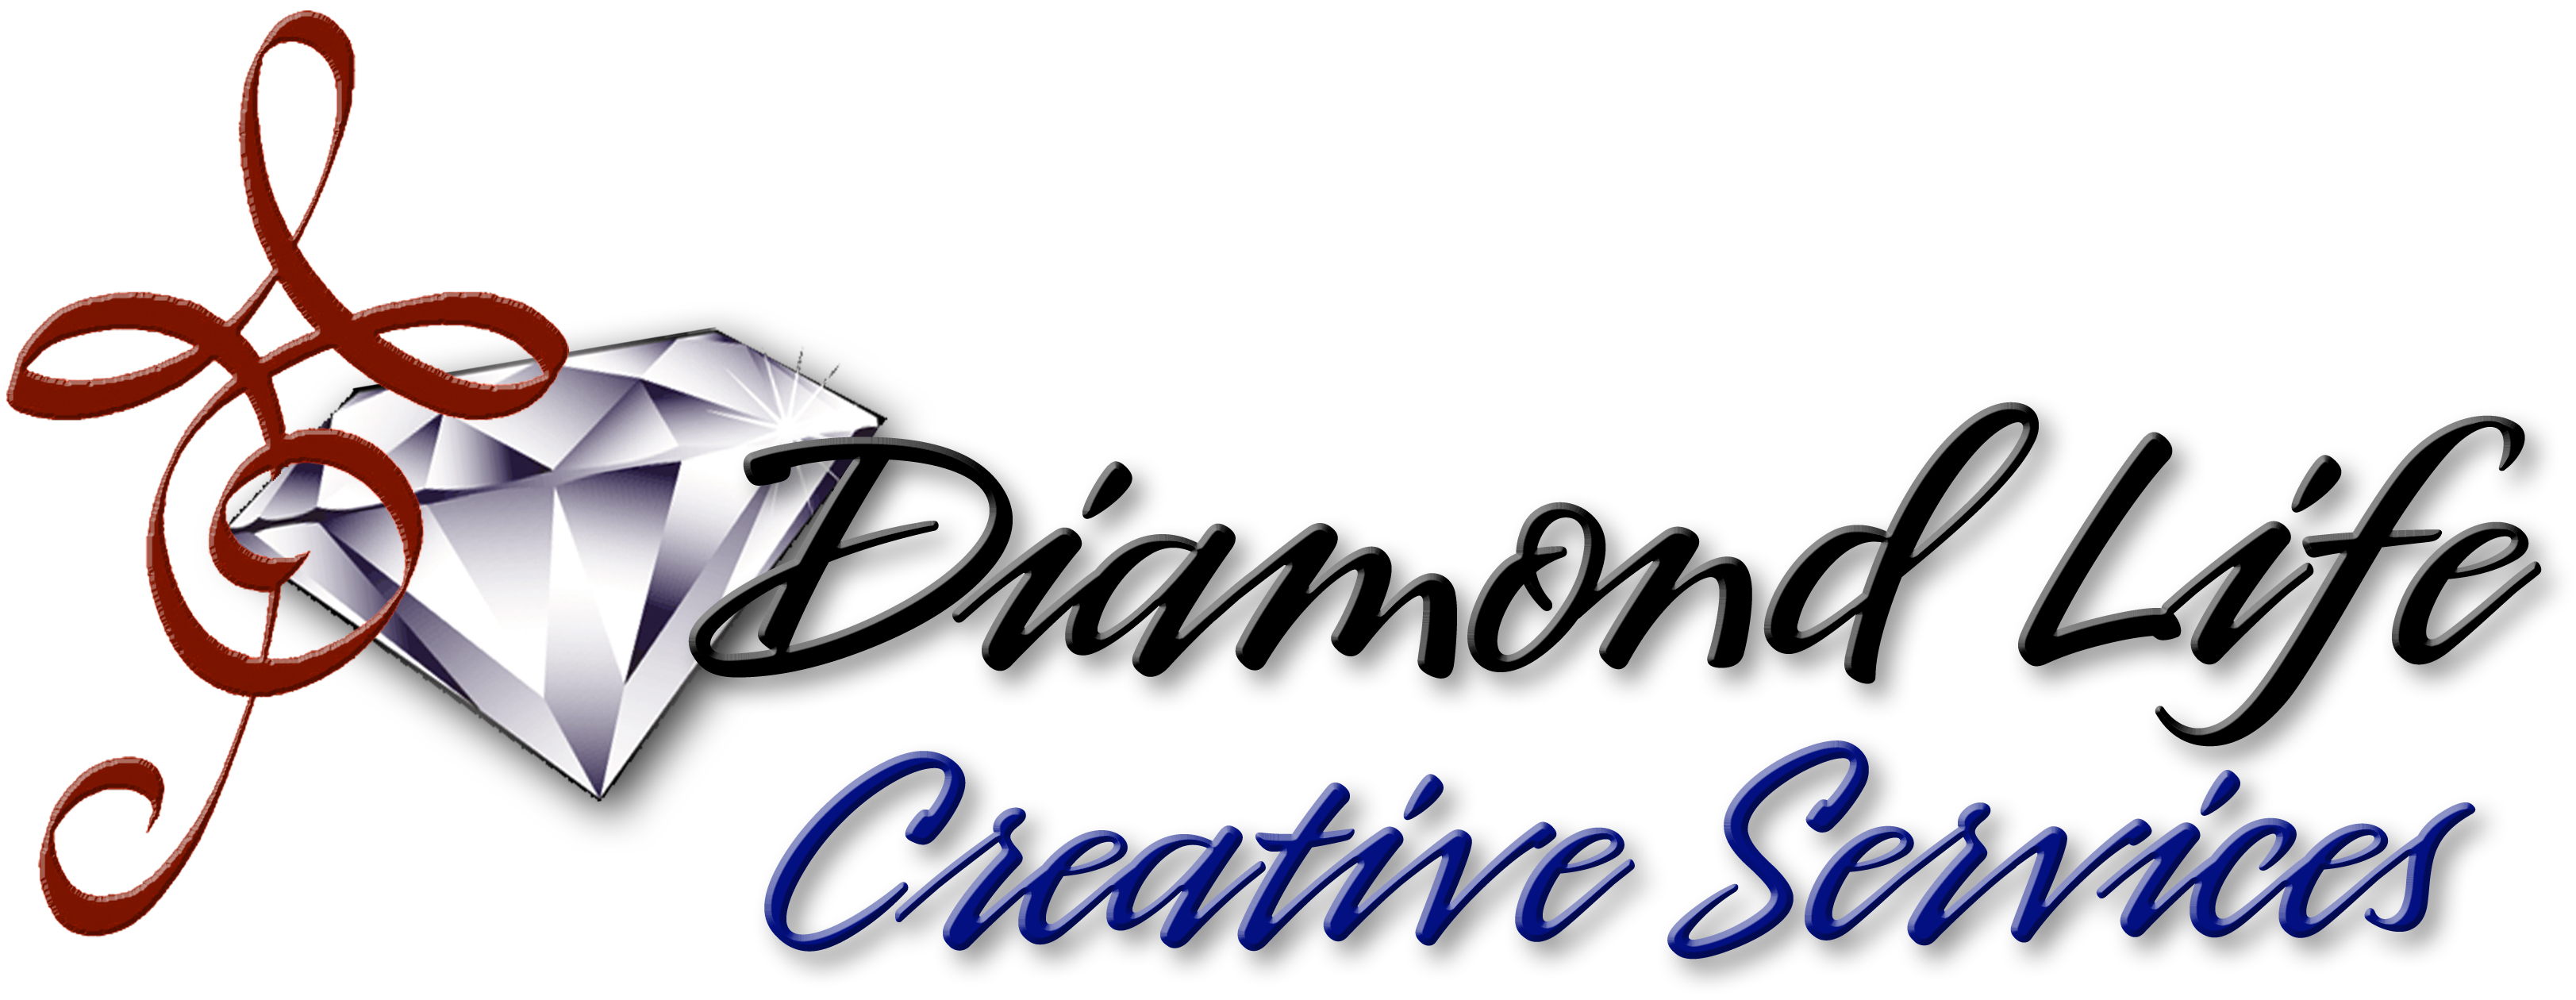 Diamond-Life-Creative-Services_logo_angel-live-life.jpg